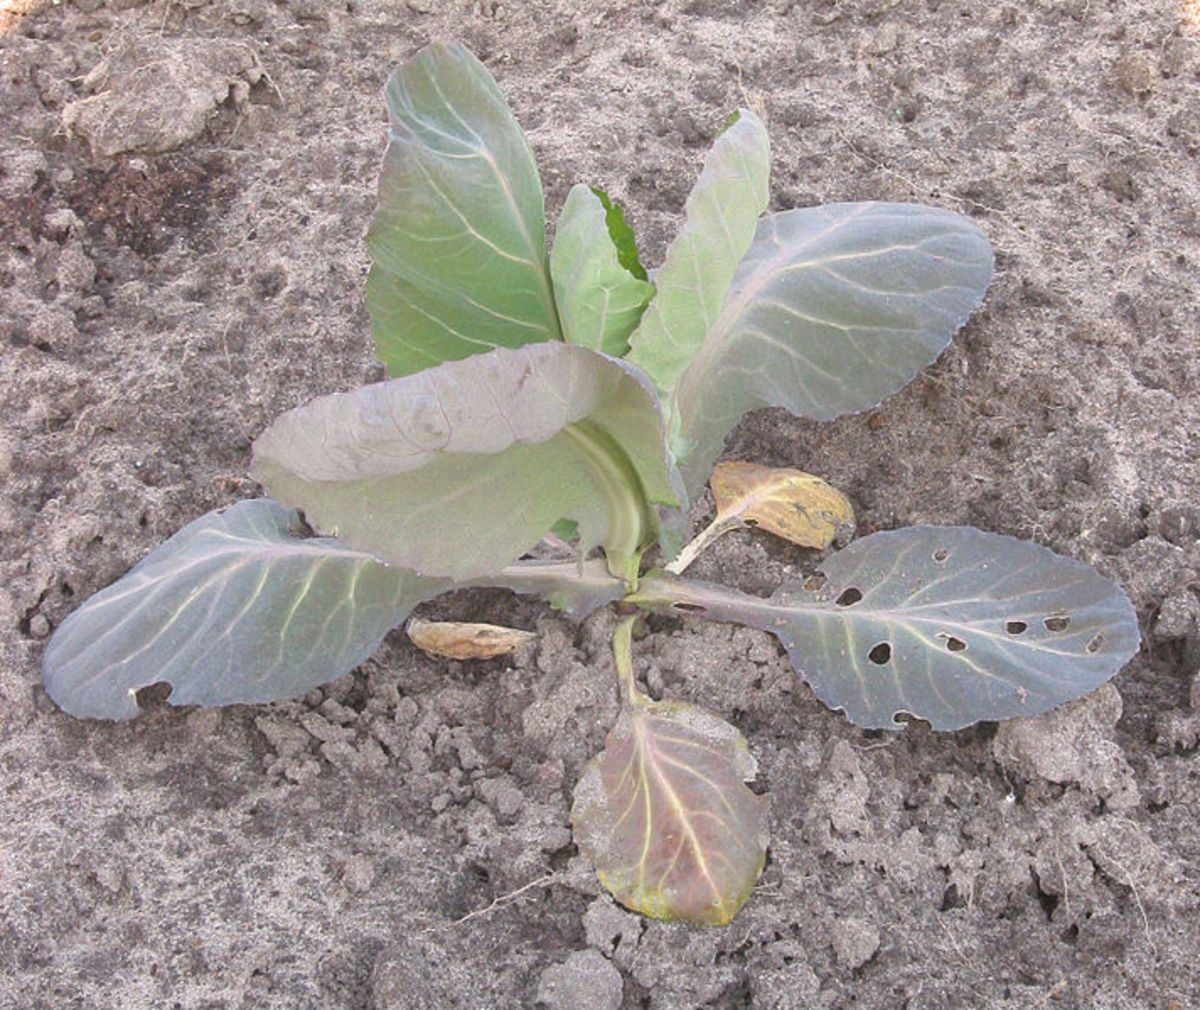 Plant Nutrient Deficiencies - What To Look For And How To Correct Them